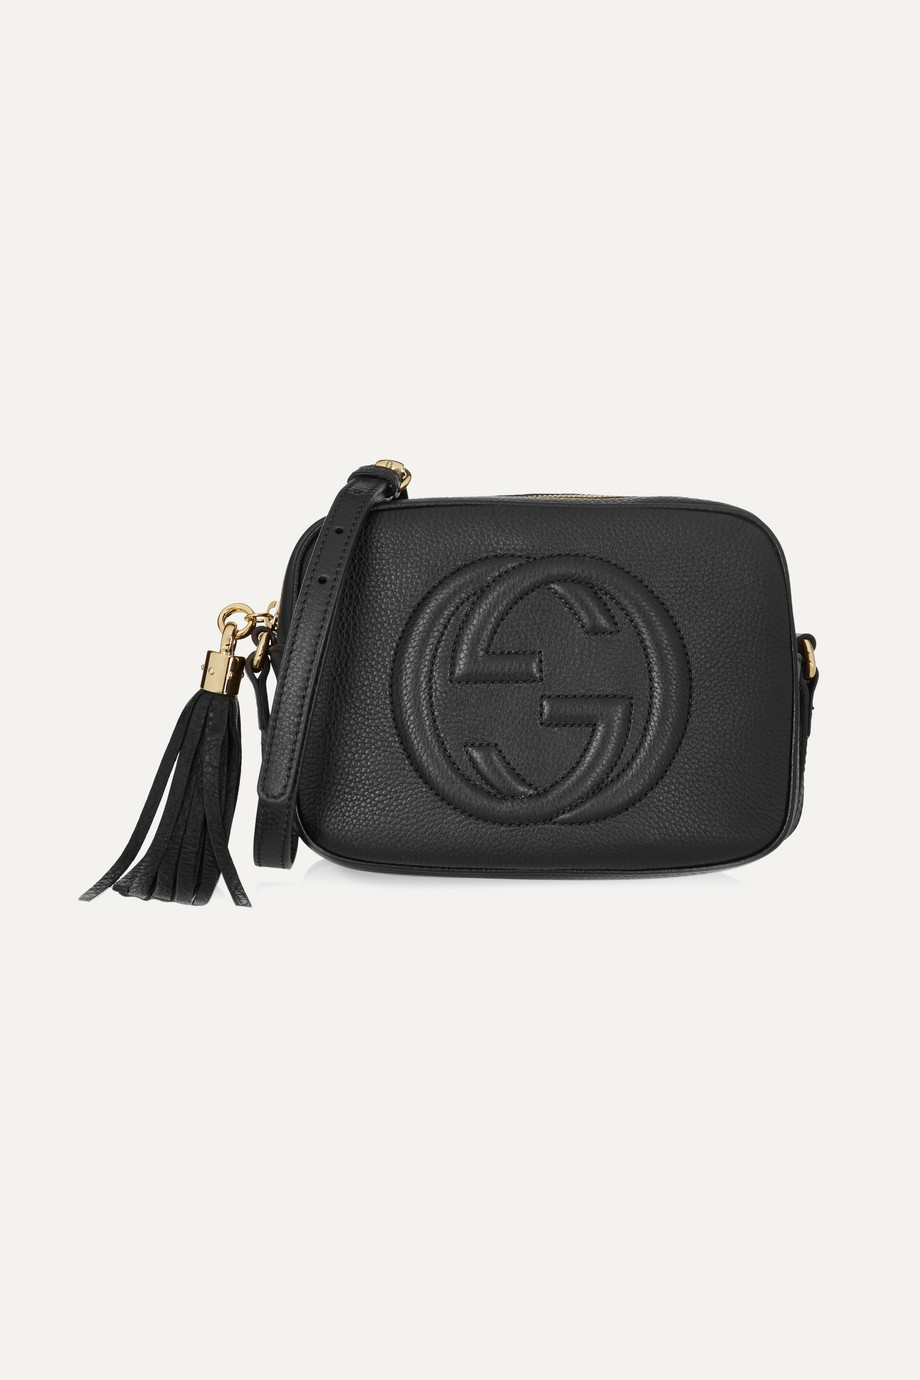 Gucci Soho Disco Textured-Leather Shoulder Bag, Black, Women's